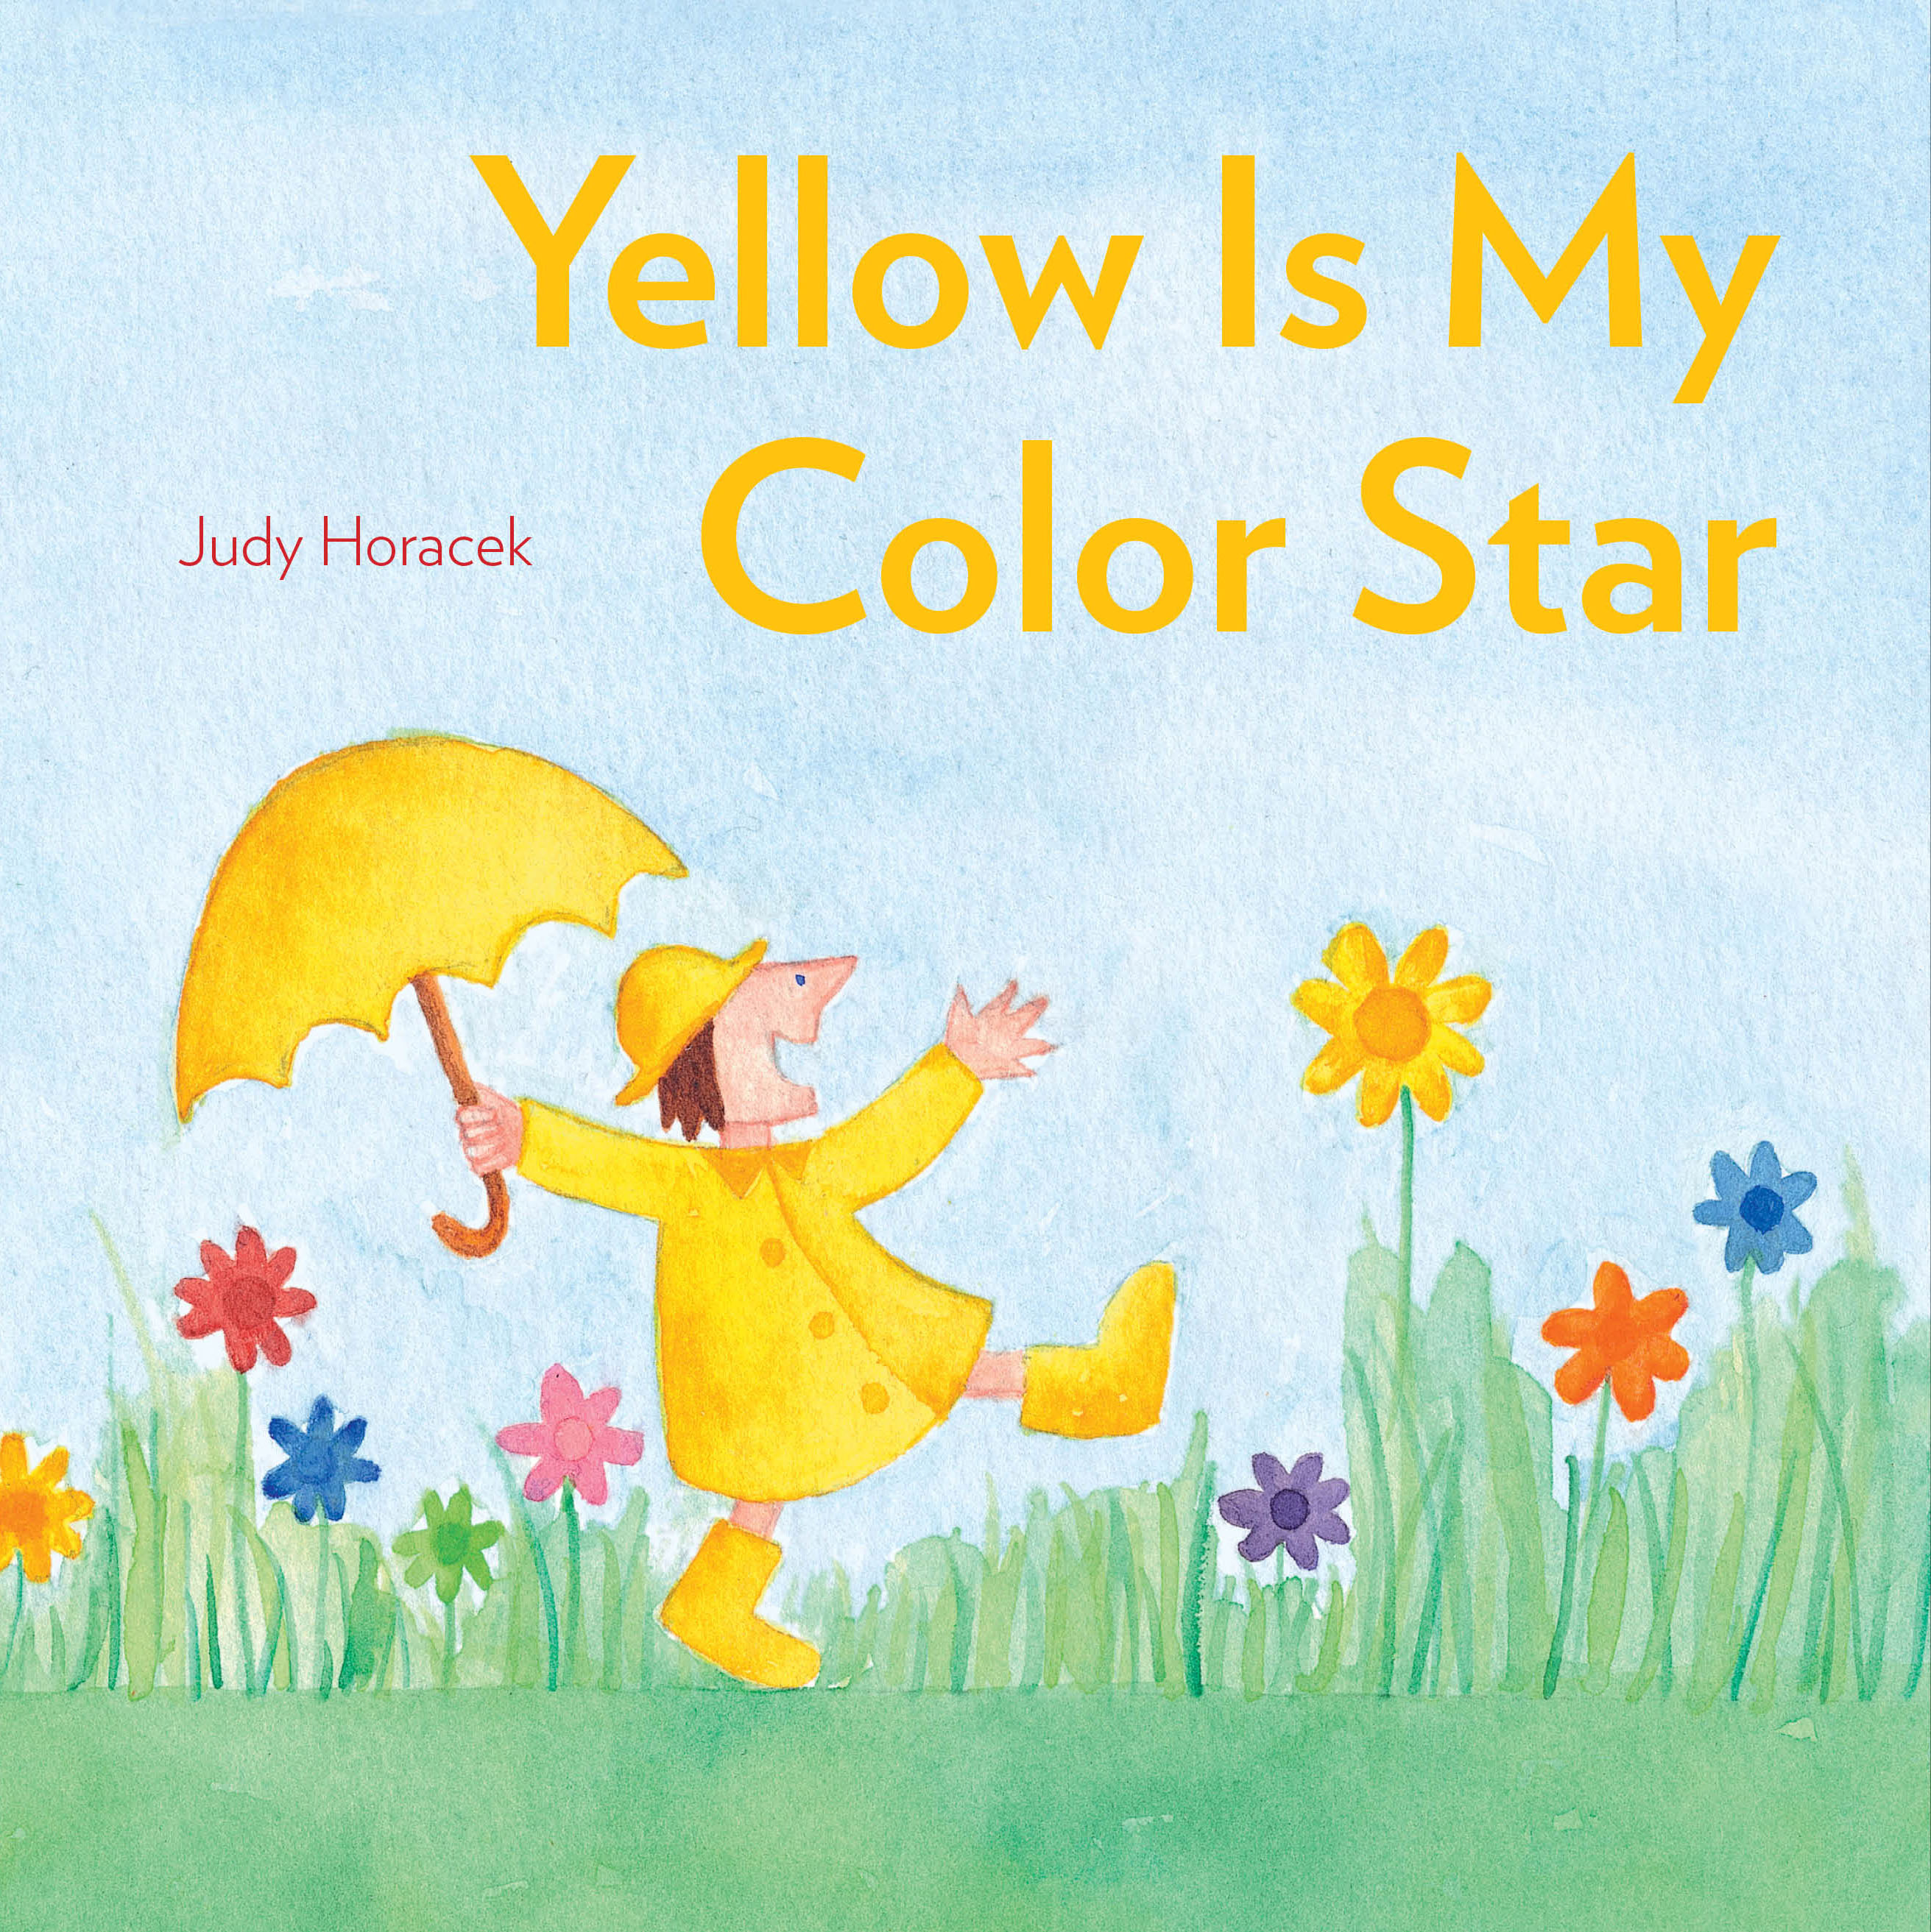 Yellow Is My Color Star | Book by Judy Horacek | Official Publisher ...